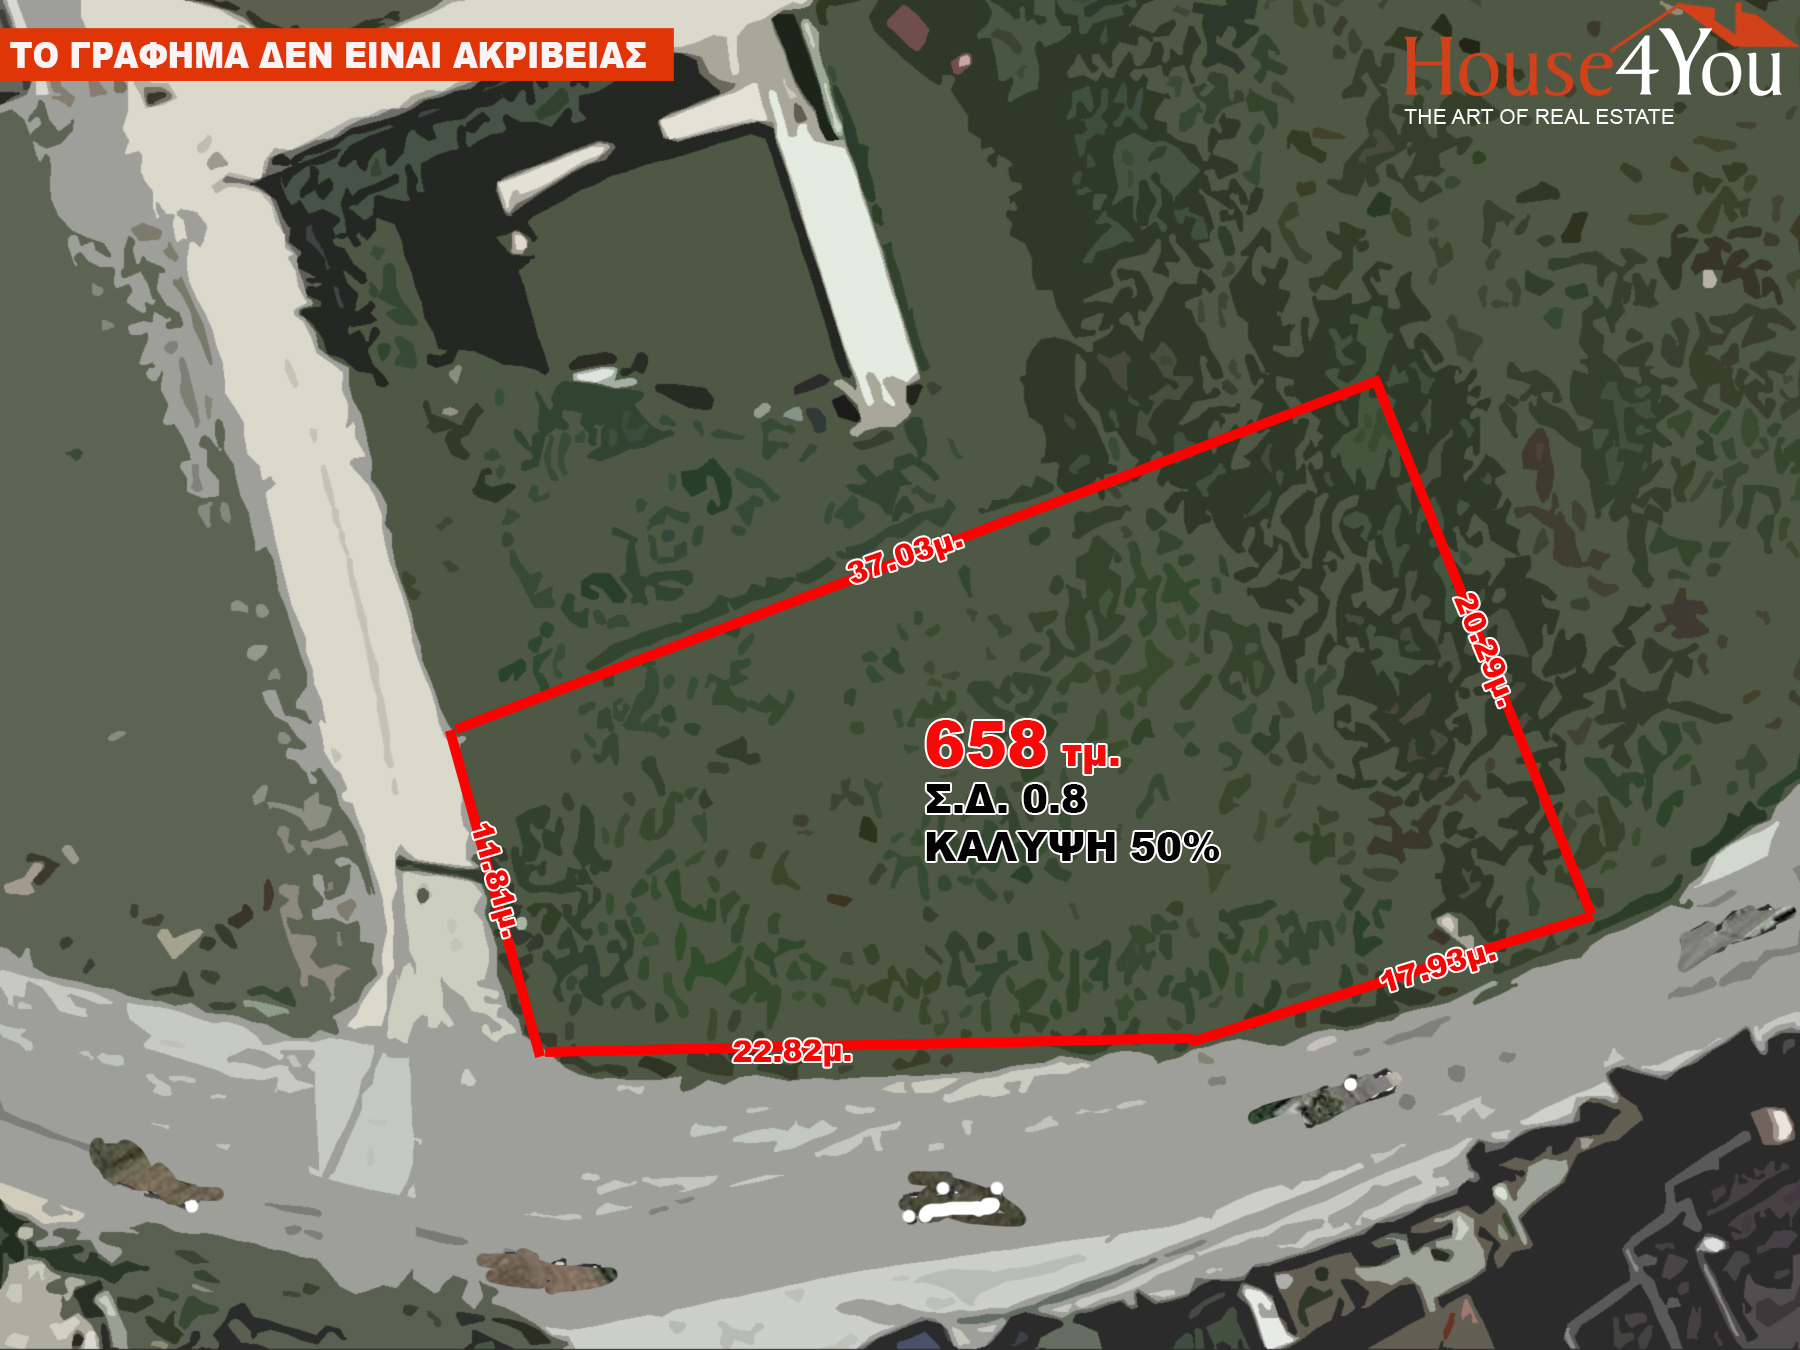 Corner plot of 658 sq.m. for sale with S.D. 0.8 in Katsikas, Ioannina